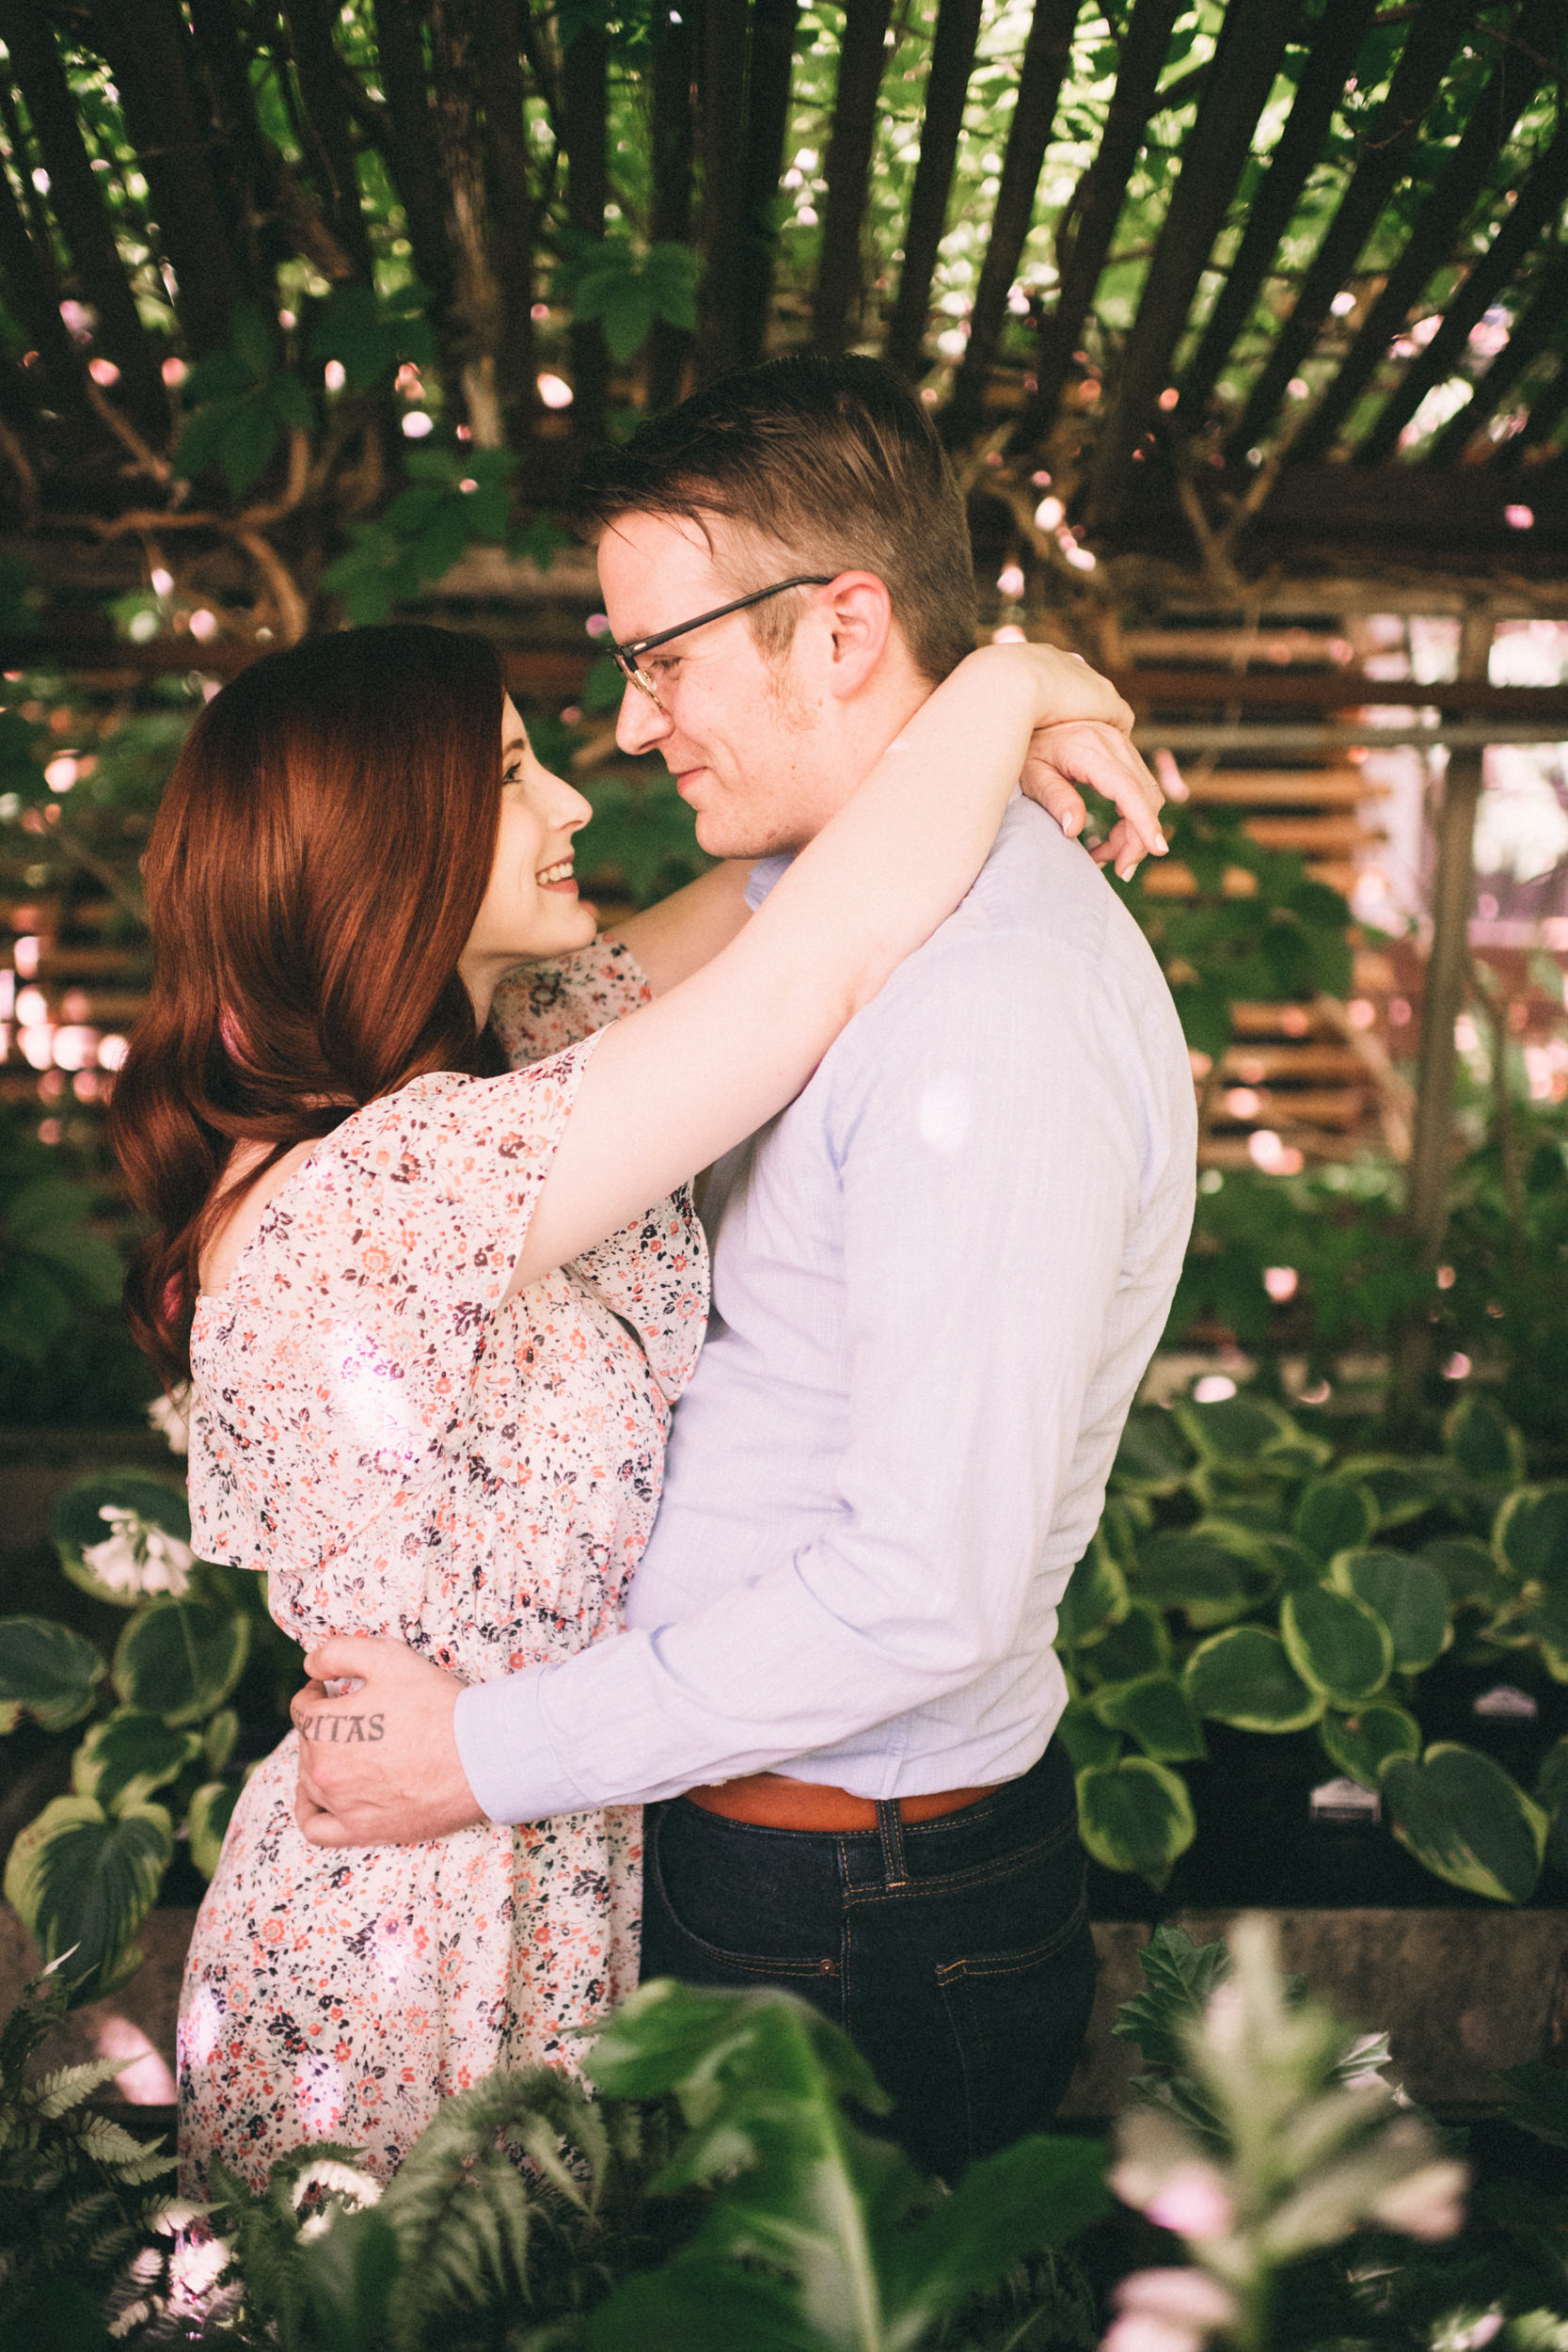 stephanie-brandon-sarah-katherine-davis-photographer-greenhouse-engagement-session-kentucky-56.jpg